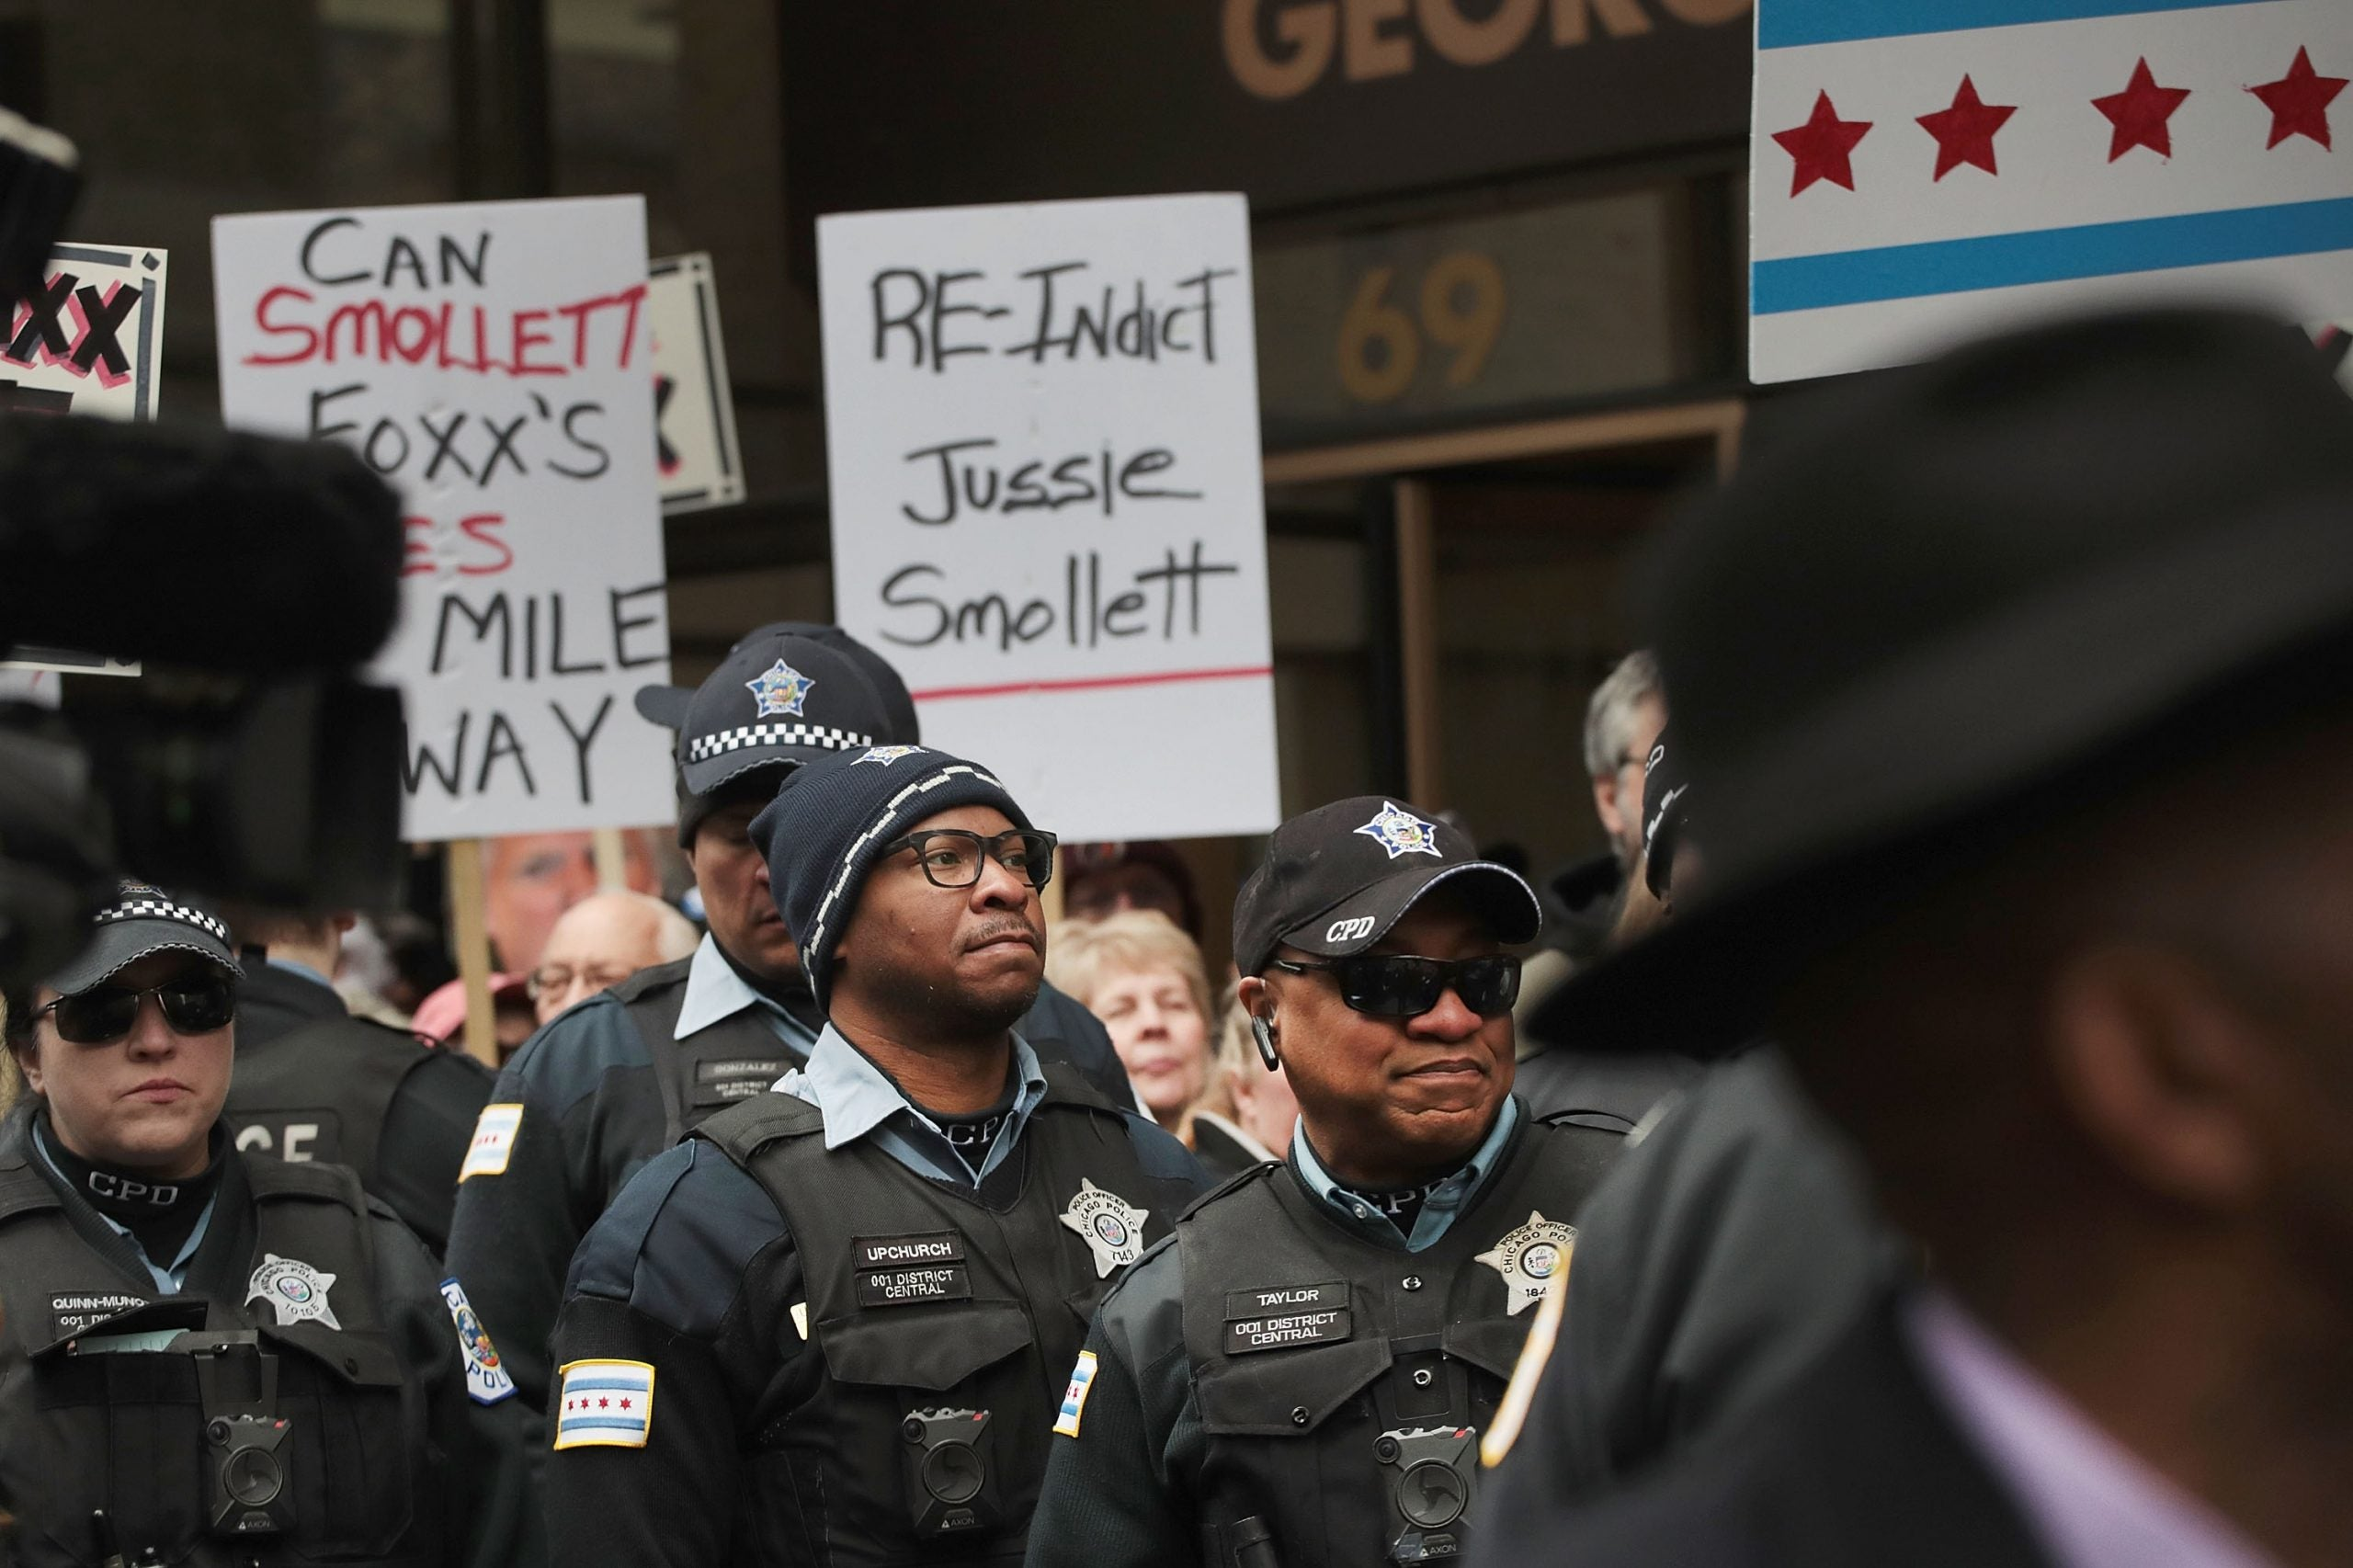 Protestors organized by the Fraternal Order of Police call for the removal of Cook County State's Attorney Kim Foxx